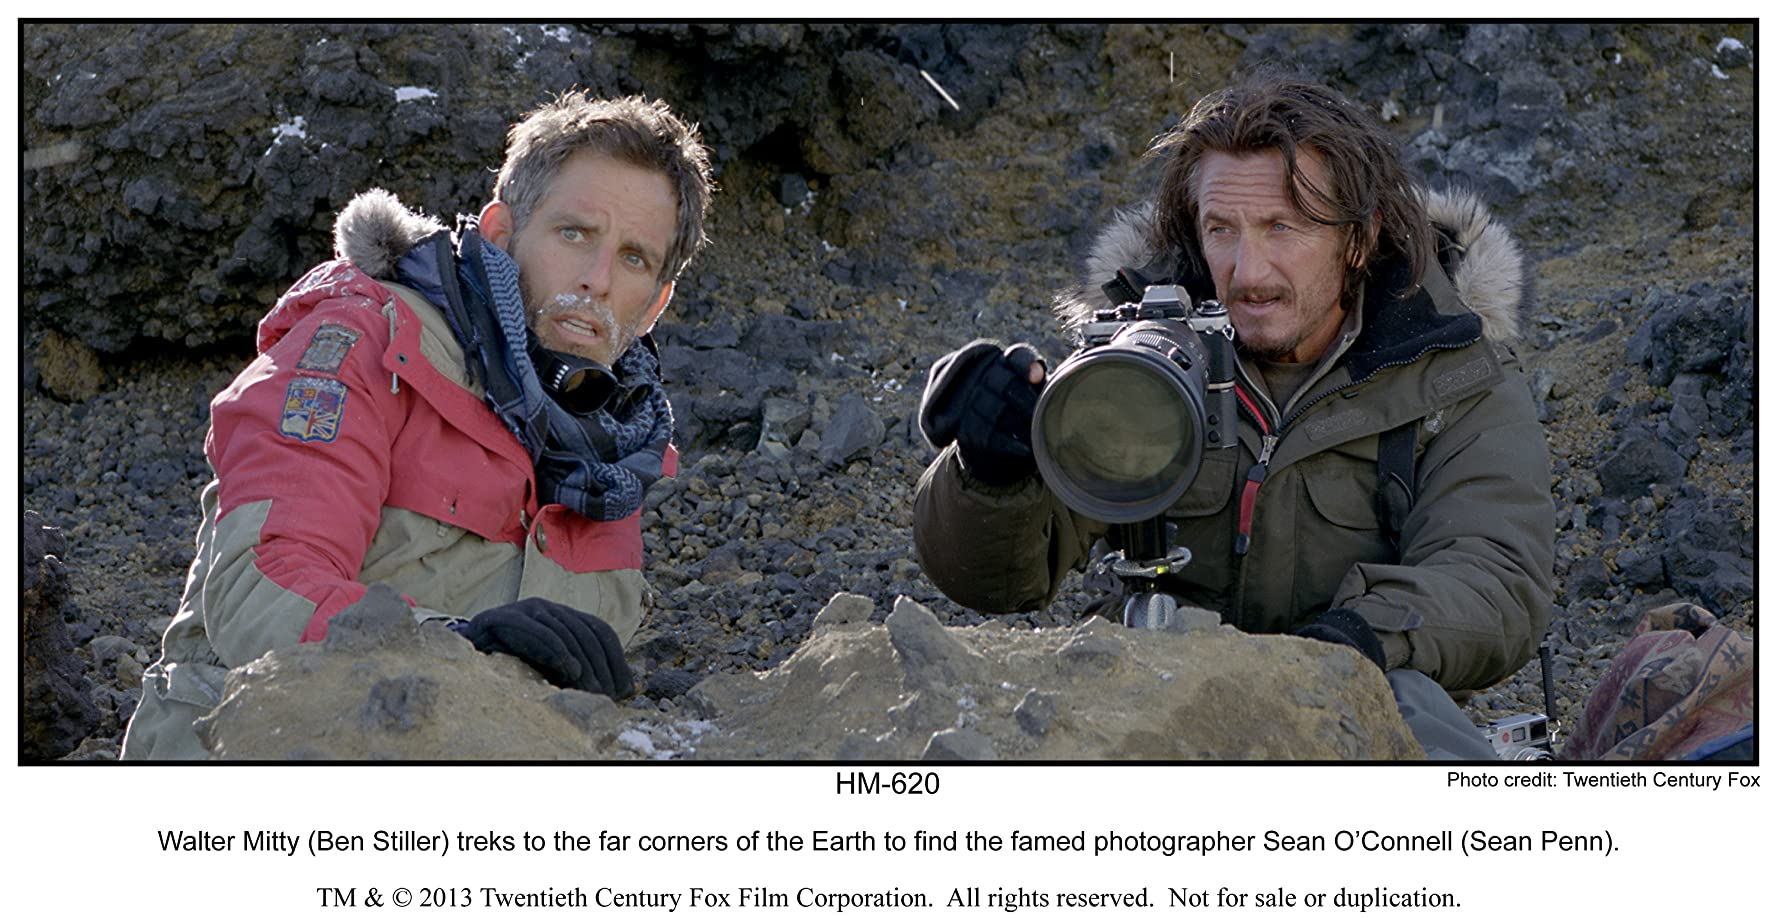 Sean Penn and Ben Stiller in The Secret Life of Walter Mitty (2013)